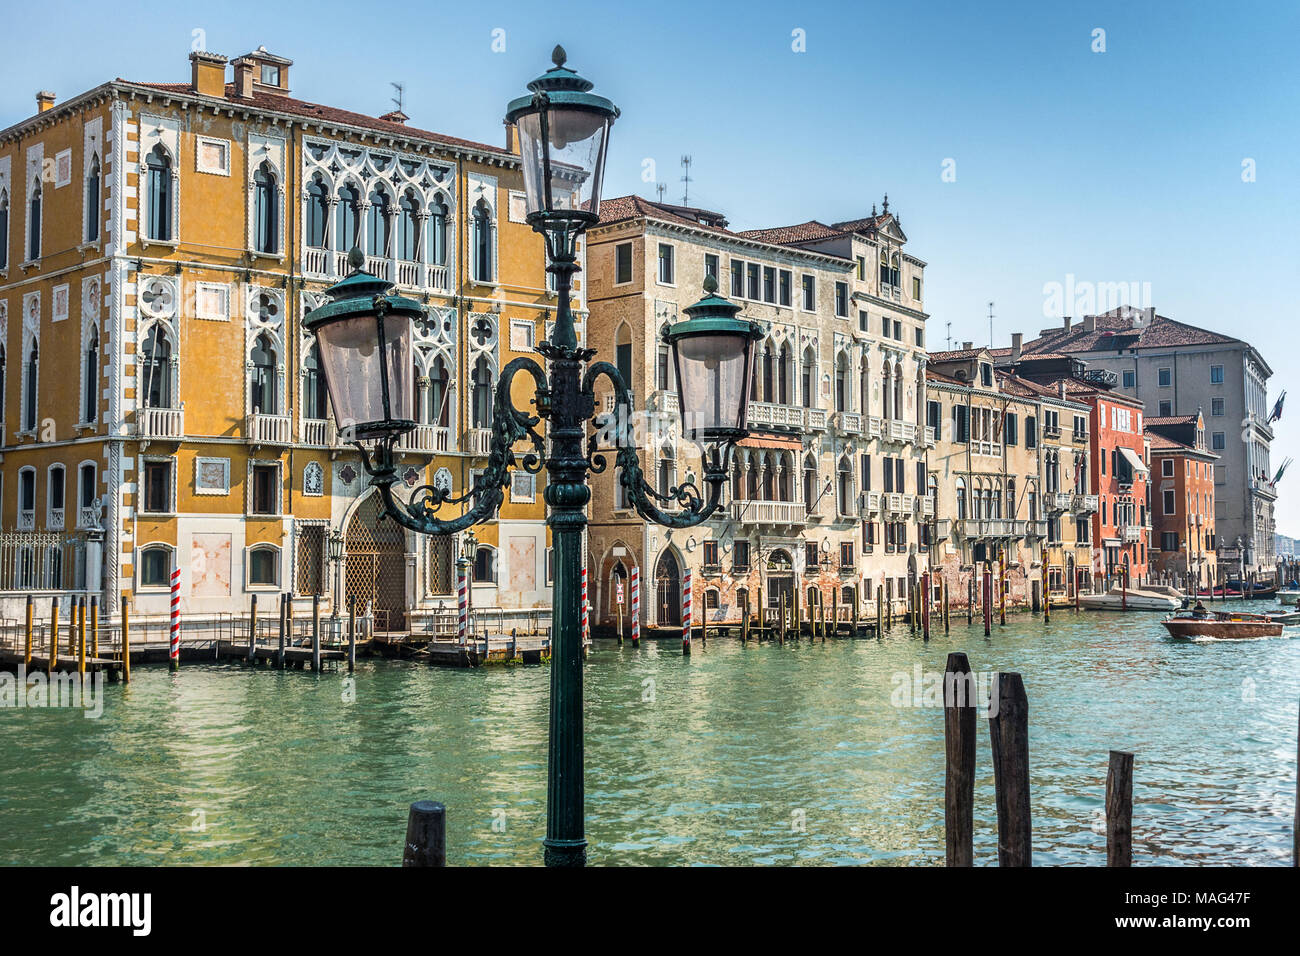 Looking across the Grand Canal at Accademia in Venice - Stock Image